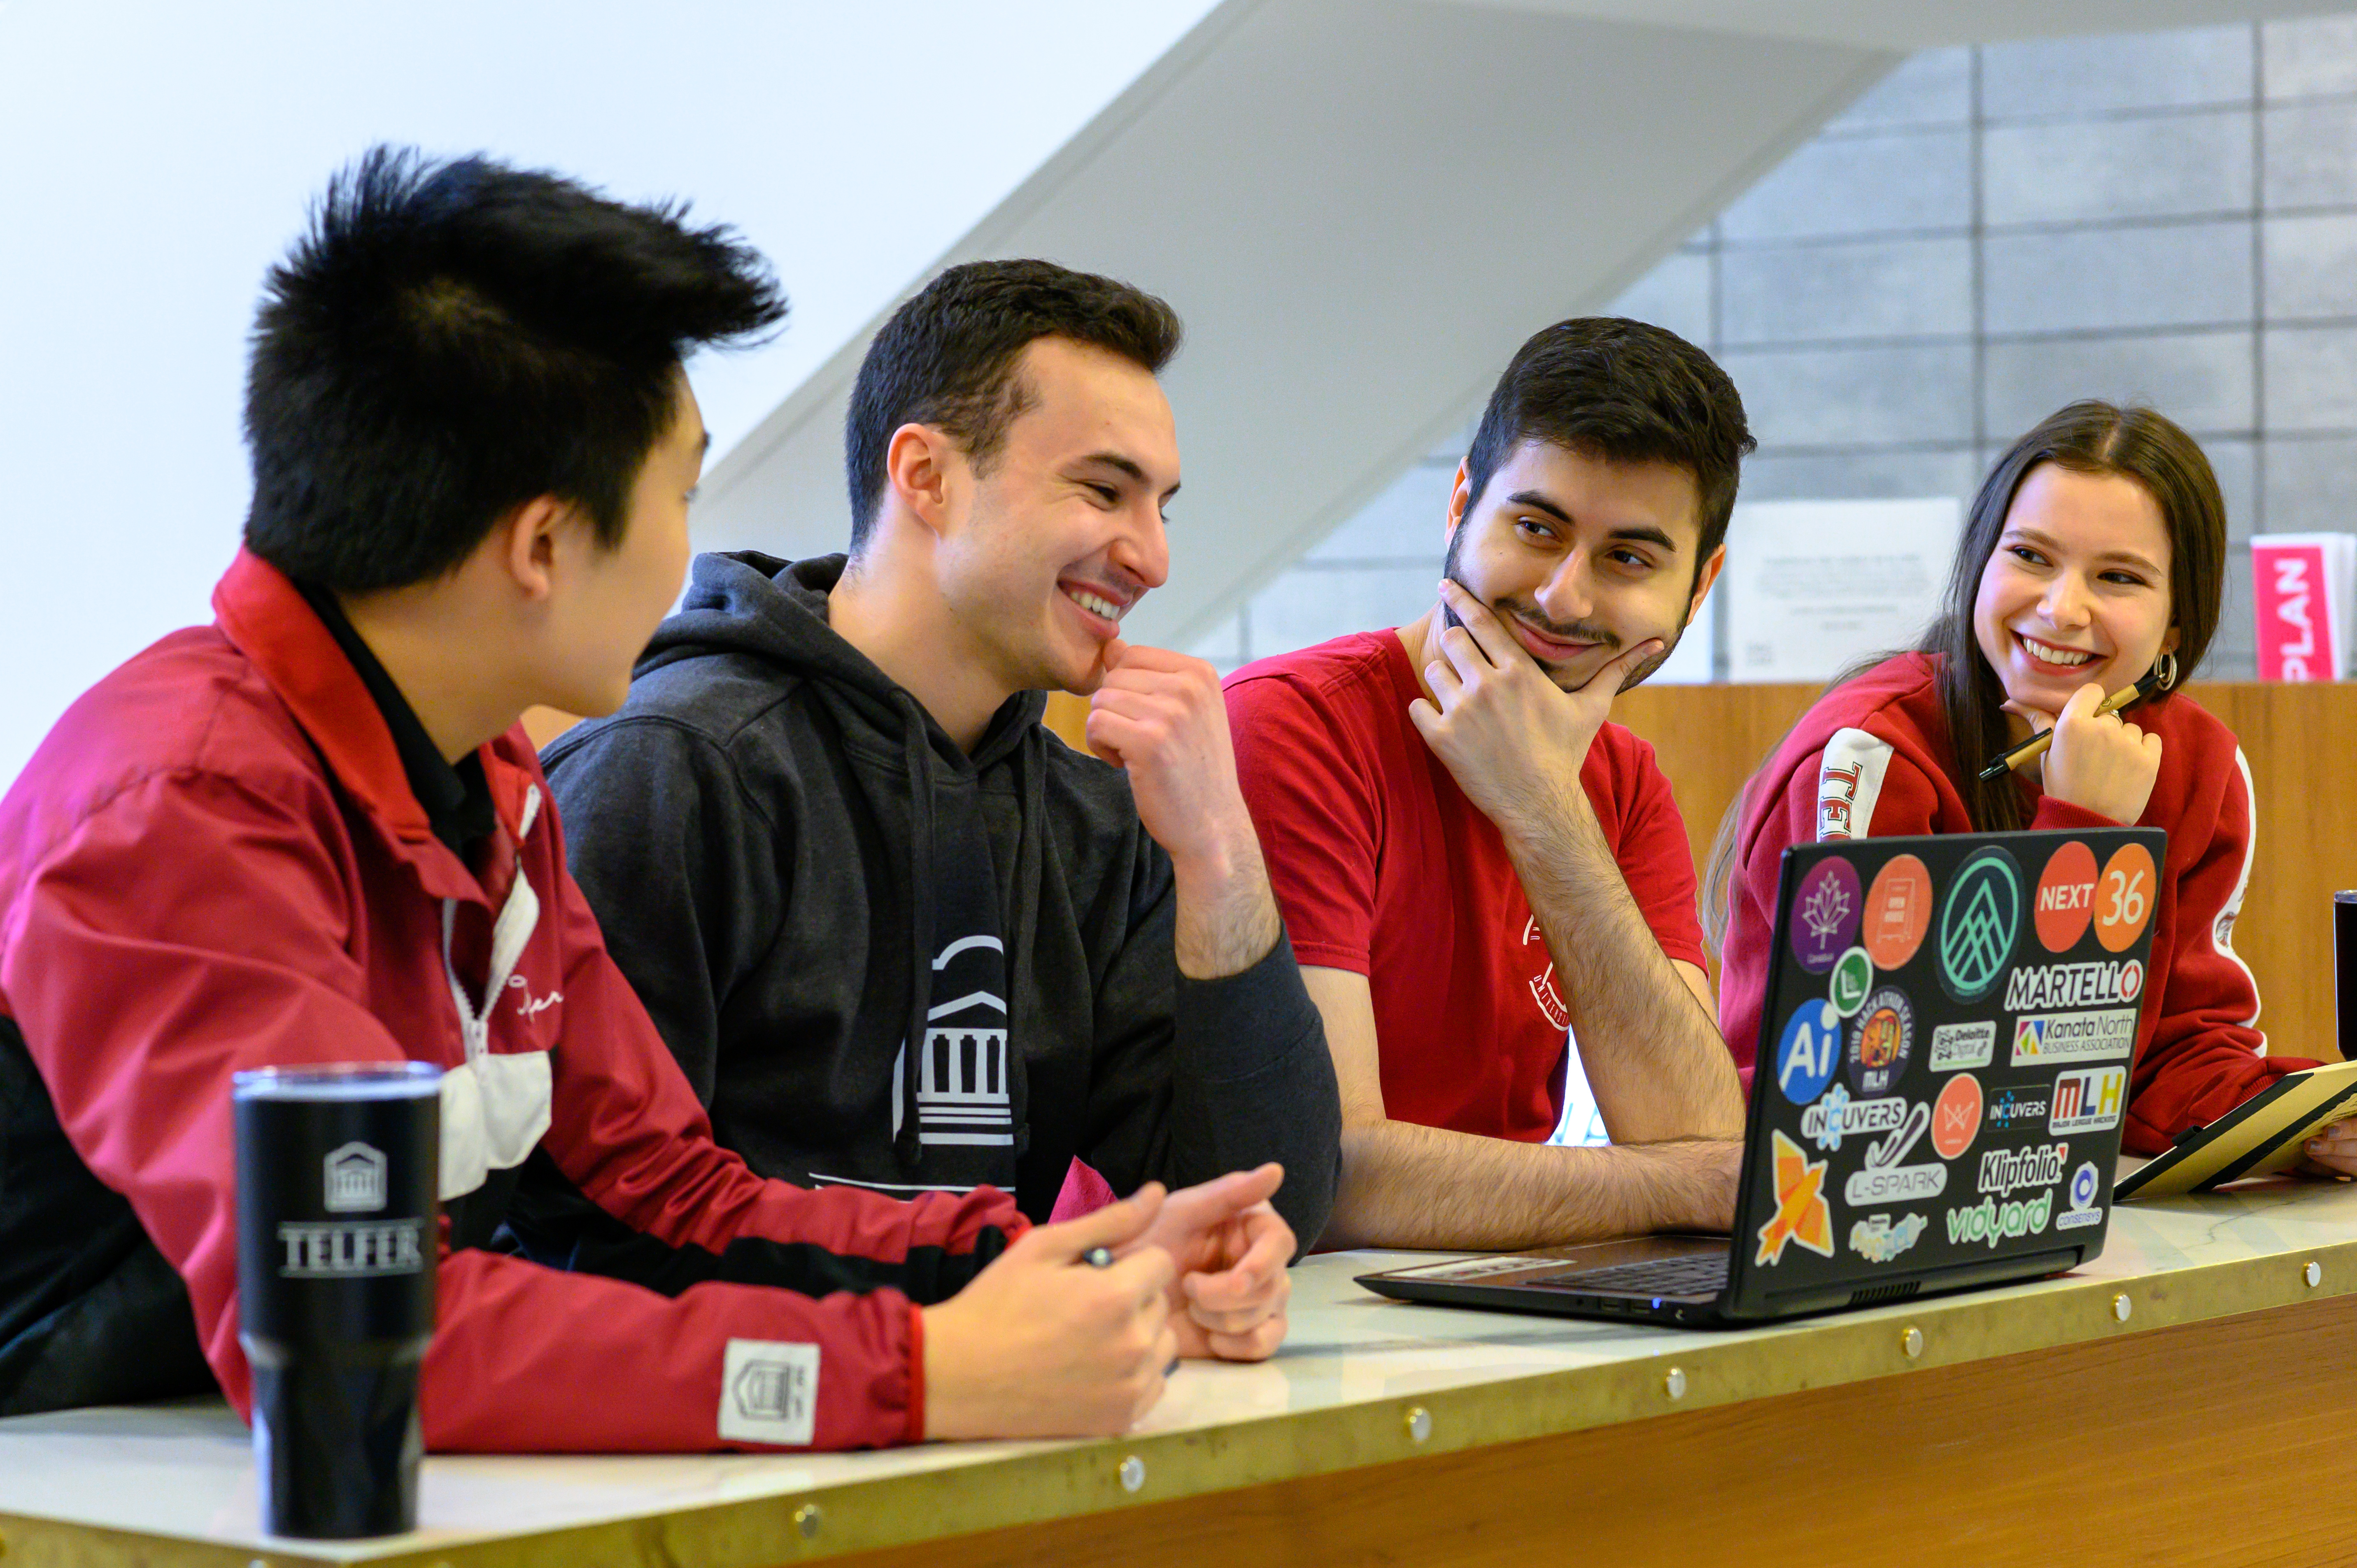 4 Telfer students smiling at one another taking a break from studying while sitting at a desk